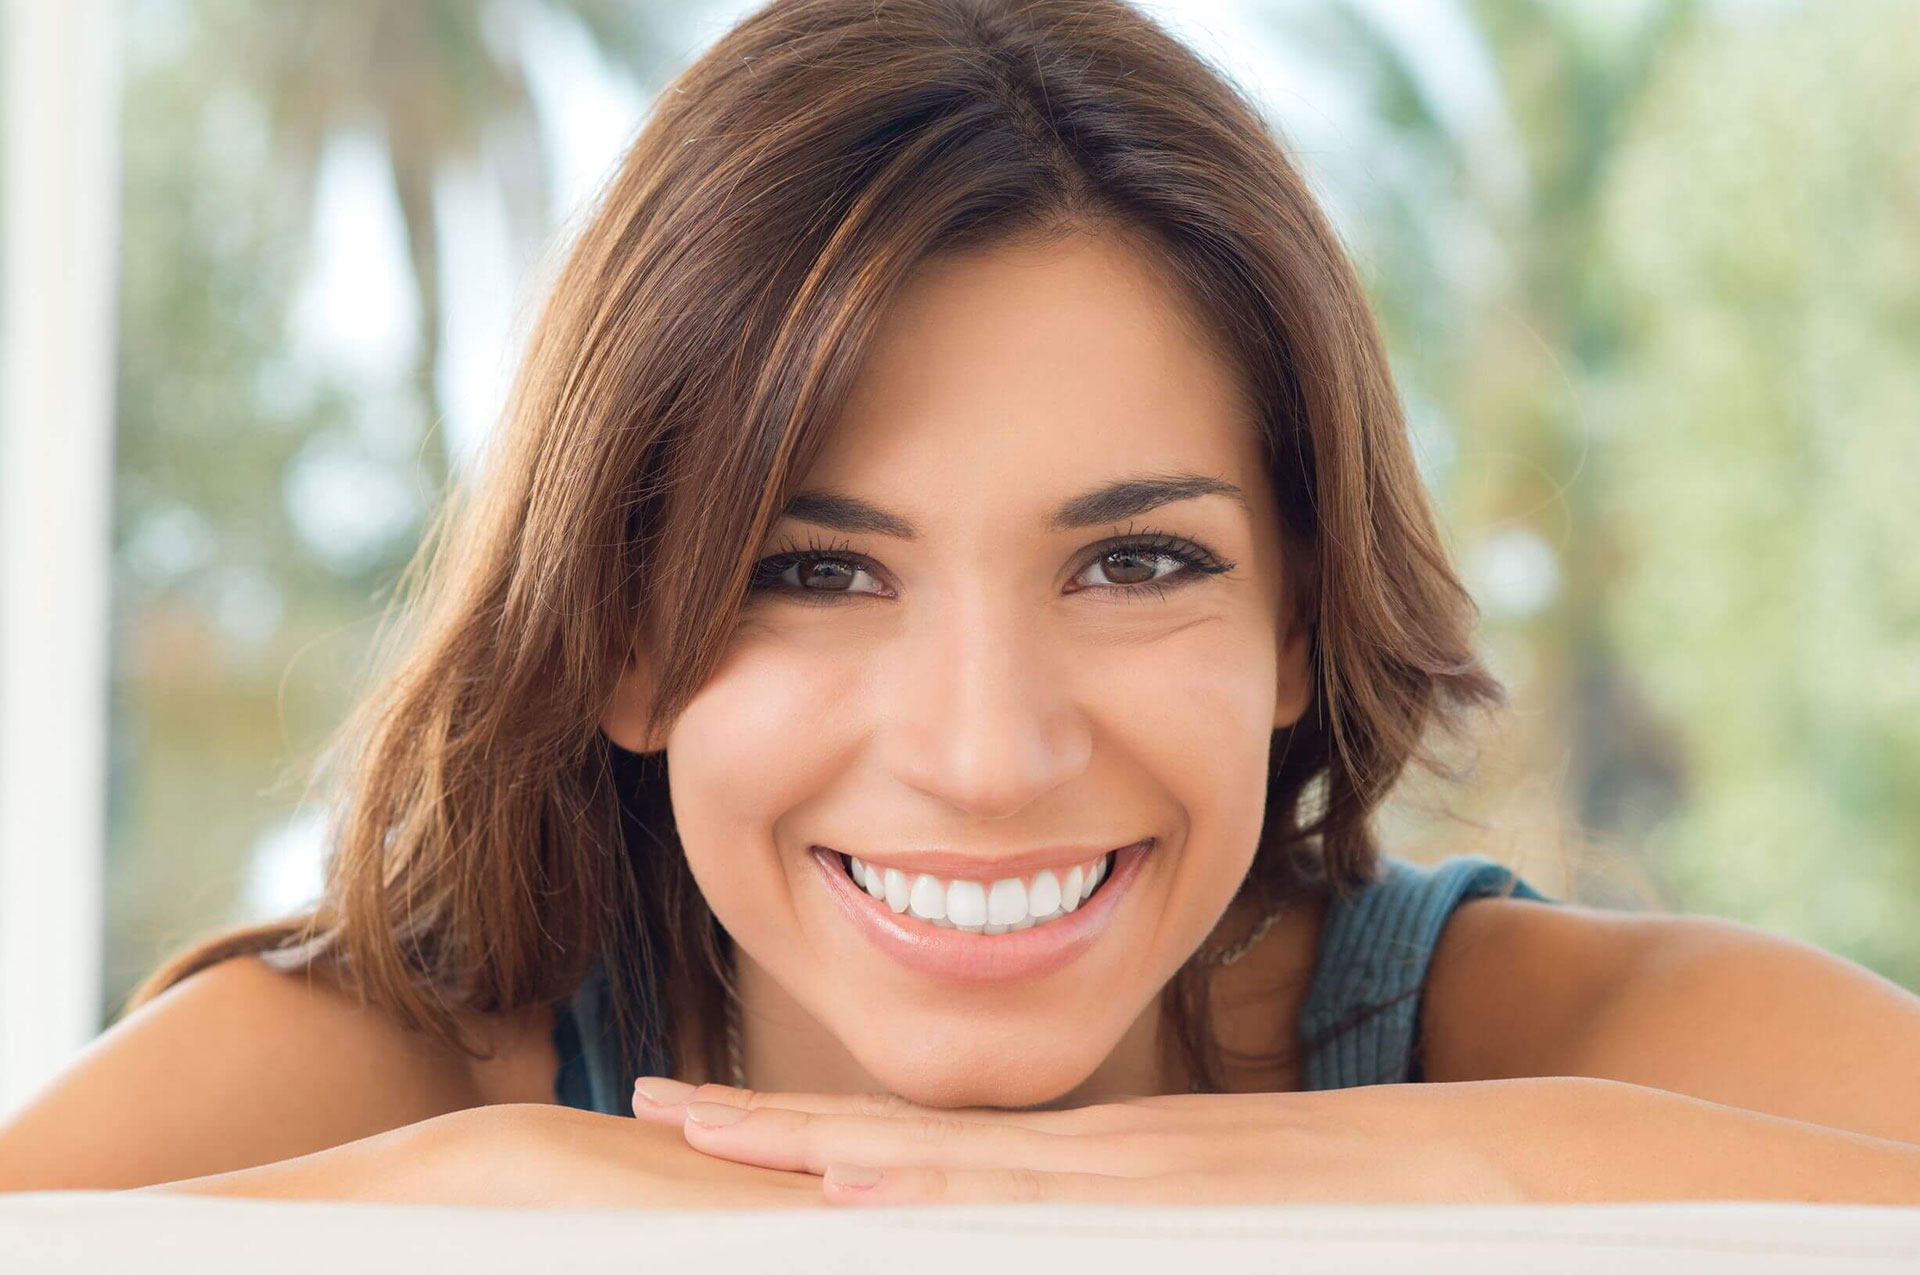 THE IMPORTANCE OF ORAL CANCER SCREENINGS